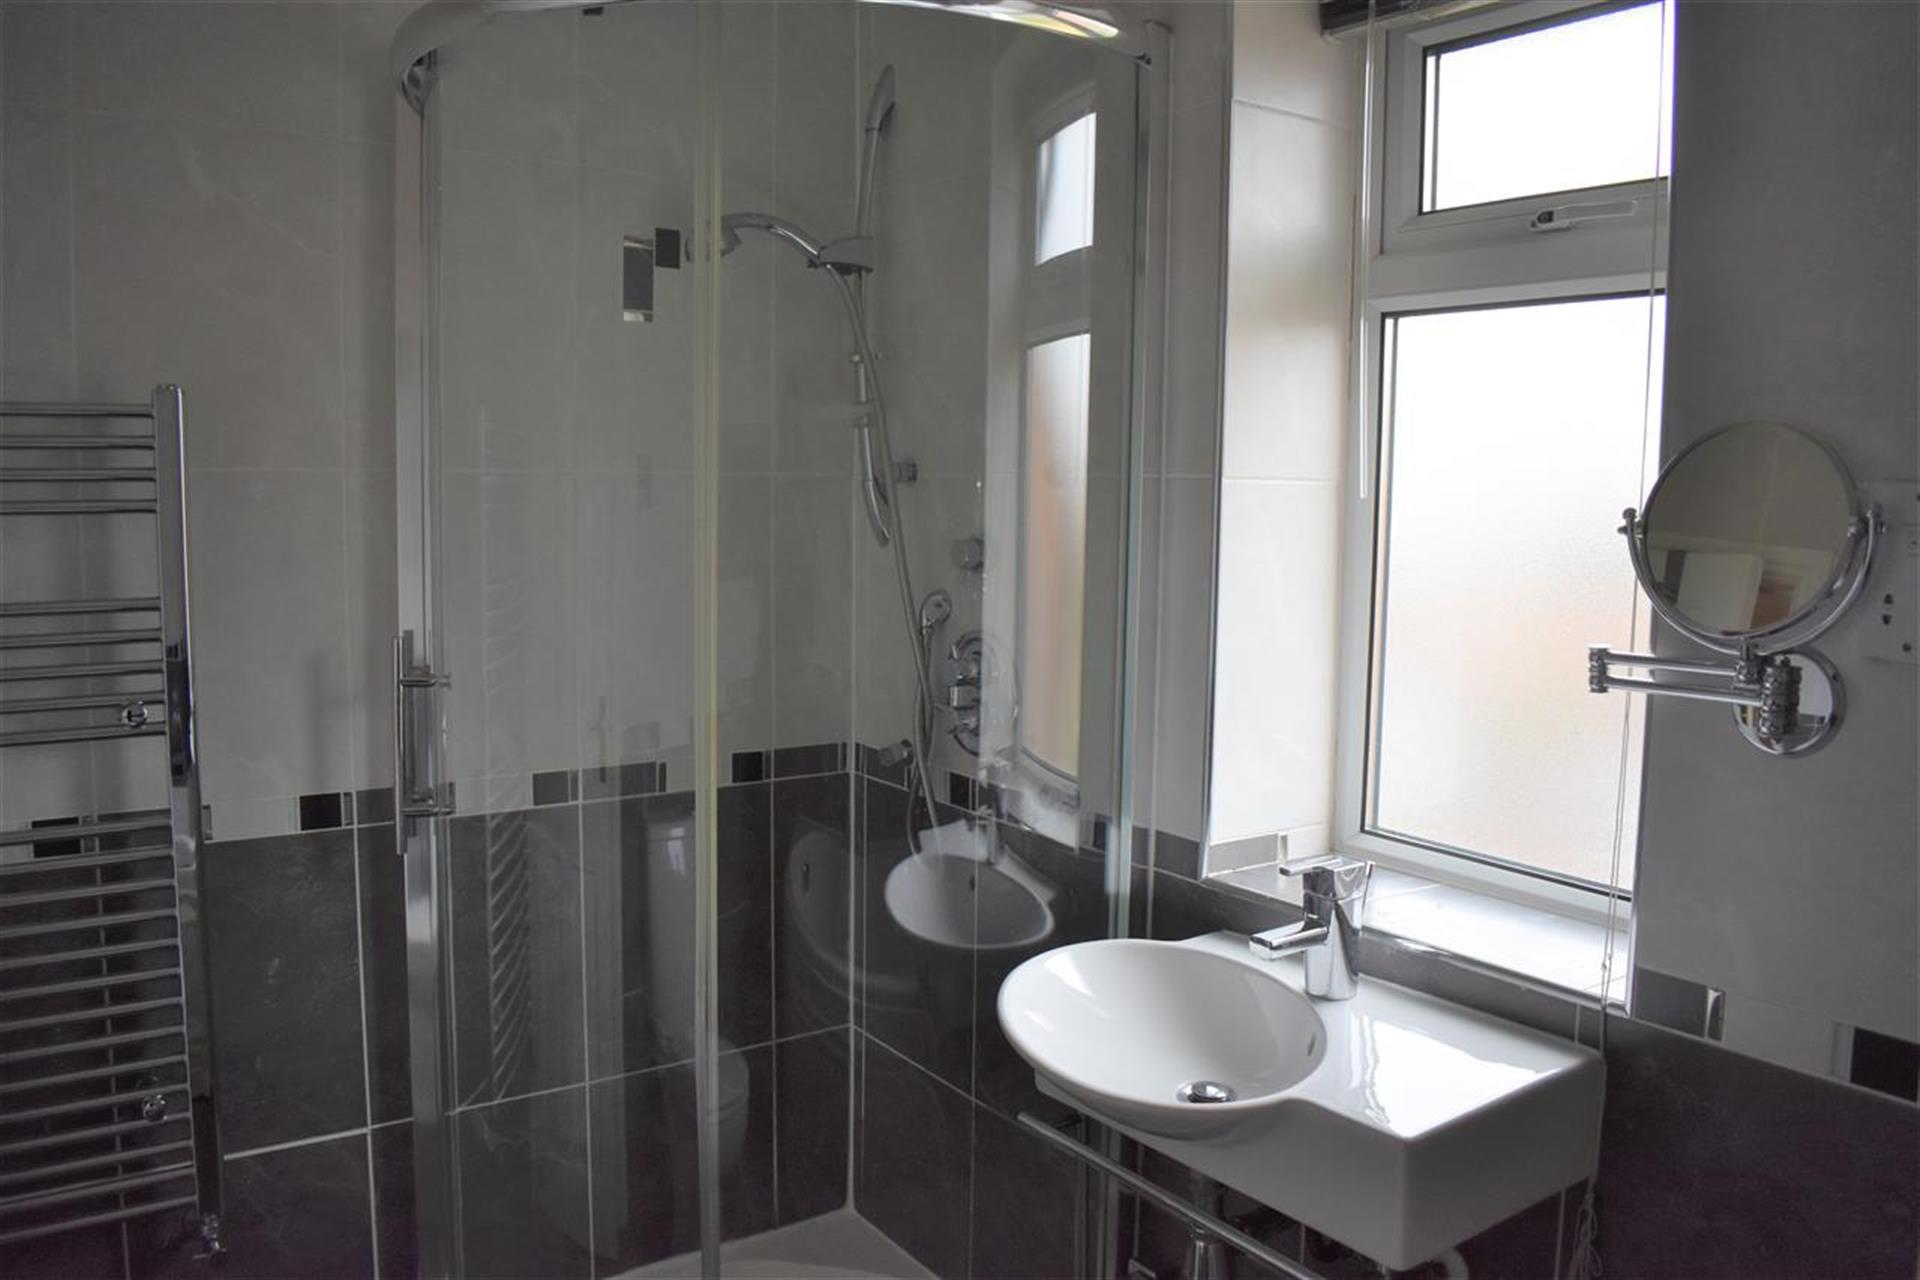 4 Bedroom Detached House For Sale - Family Bathroom